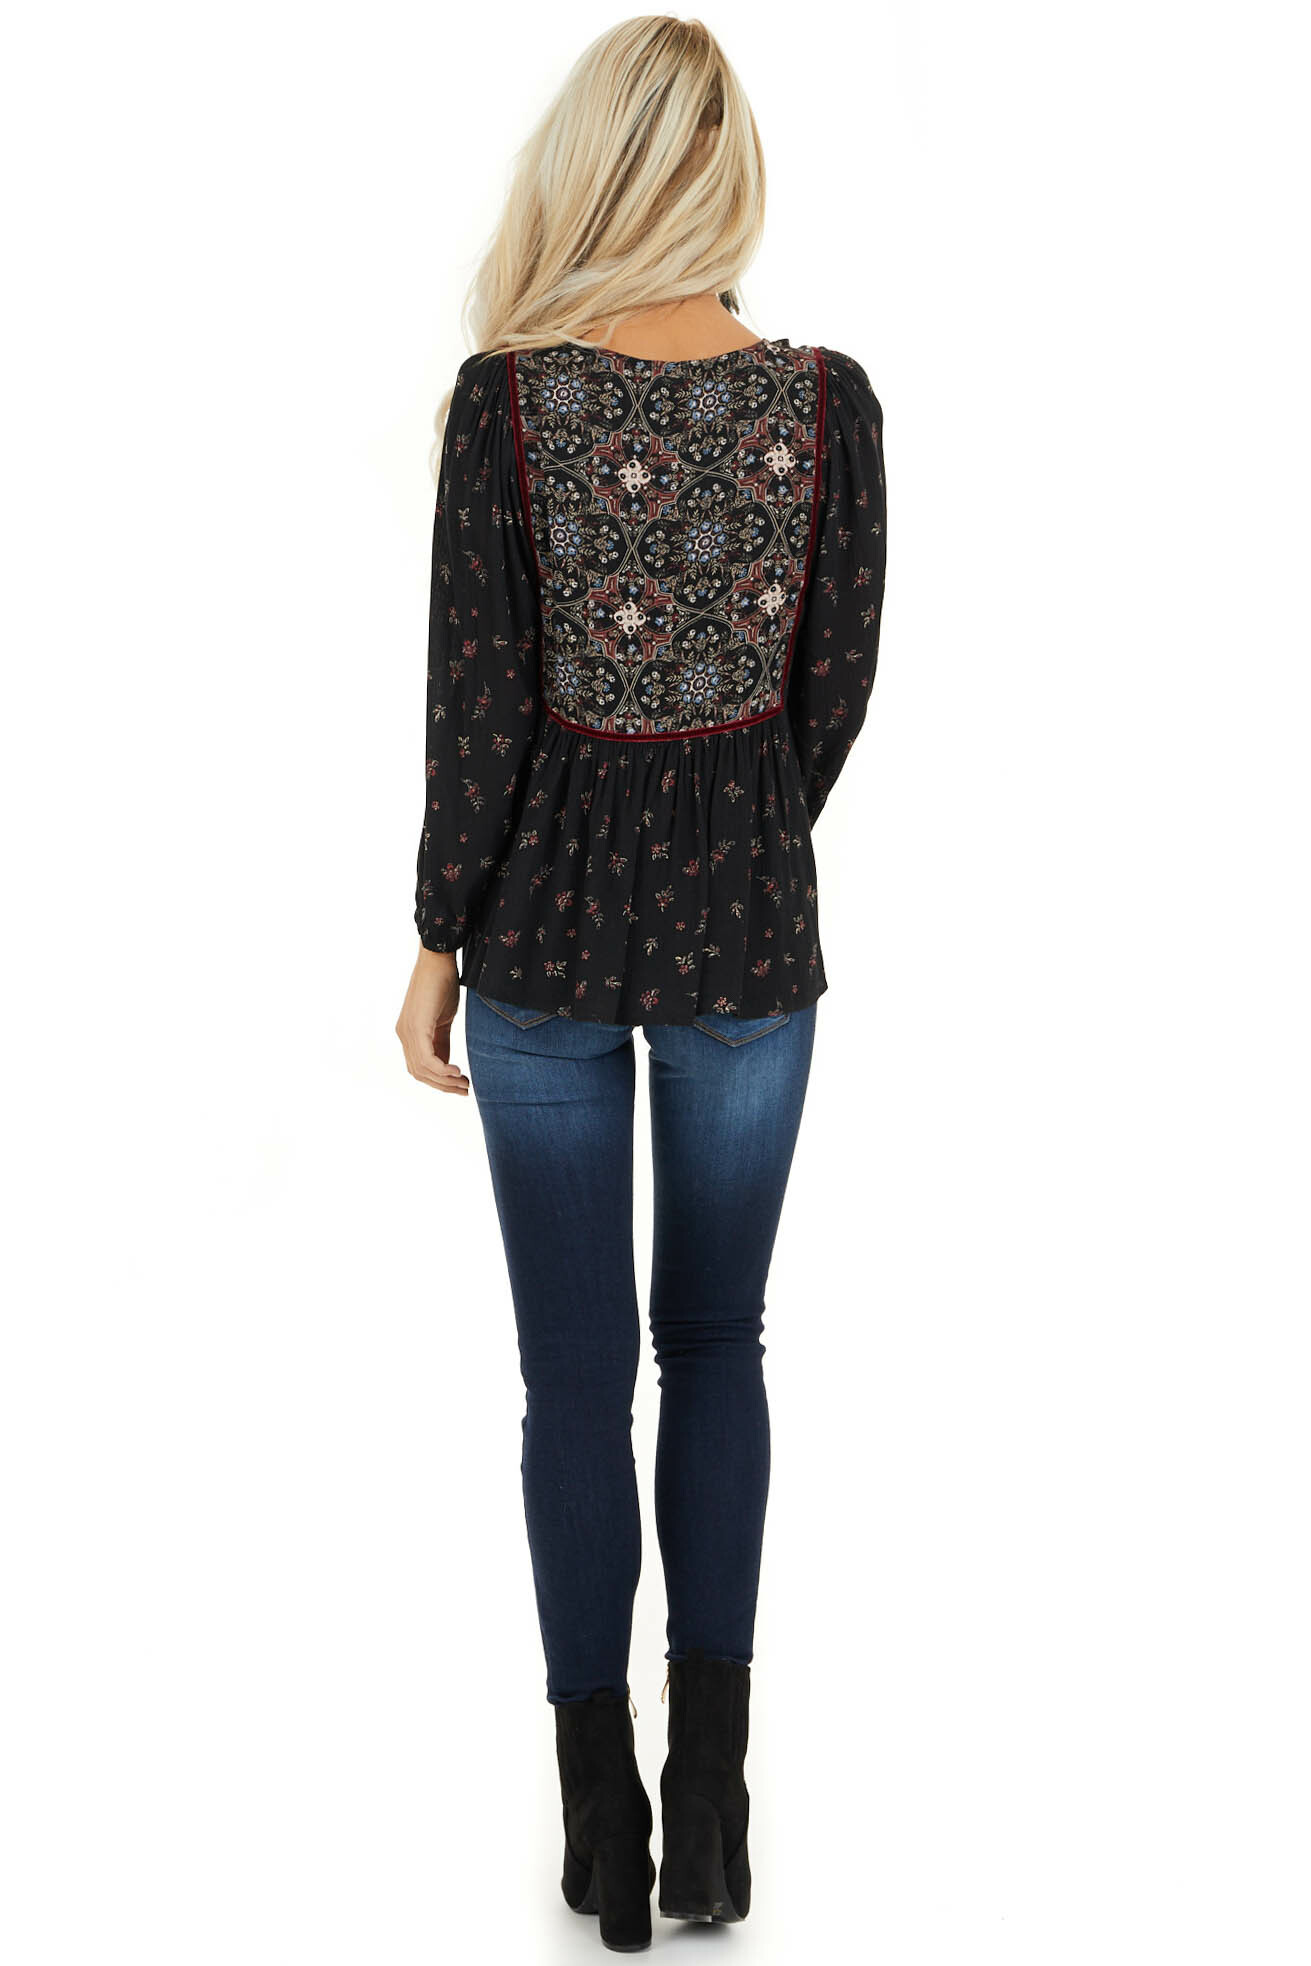 Onyx Black Floral Print 3/4 Sleeve Peasant Top with Tie back full body